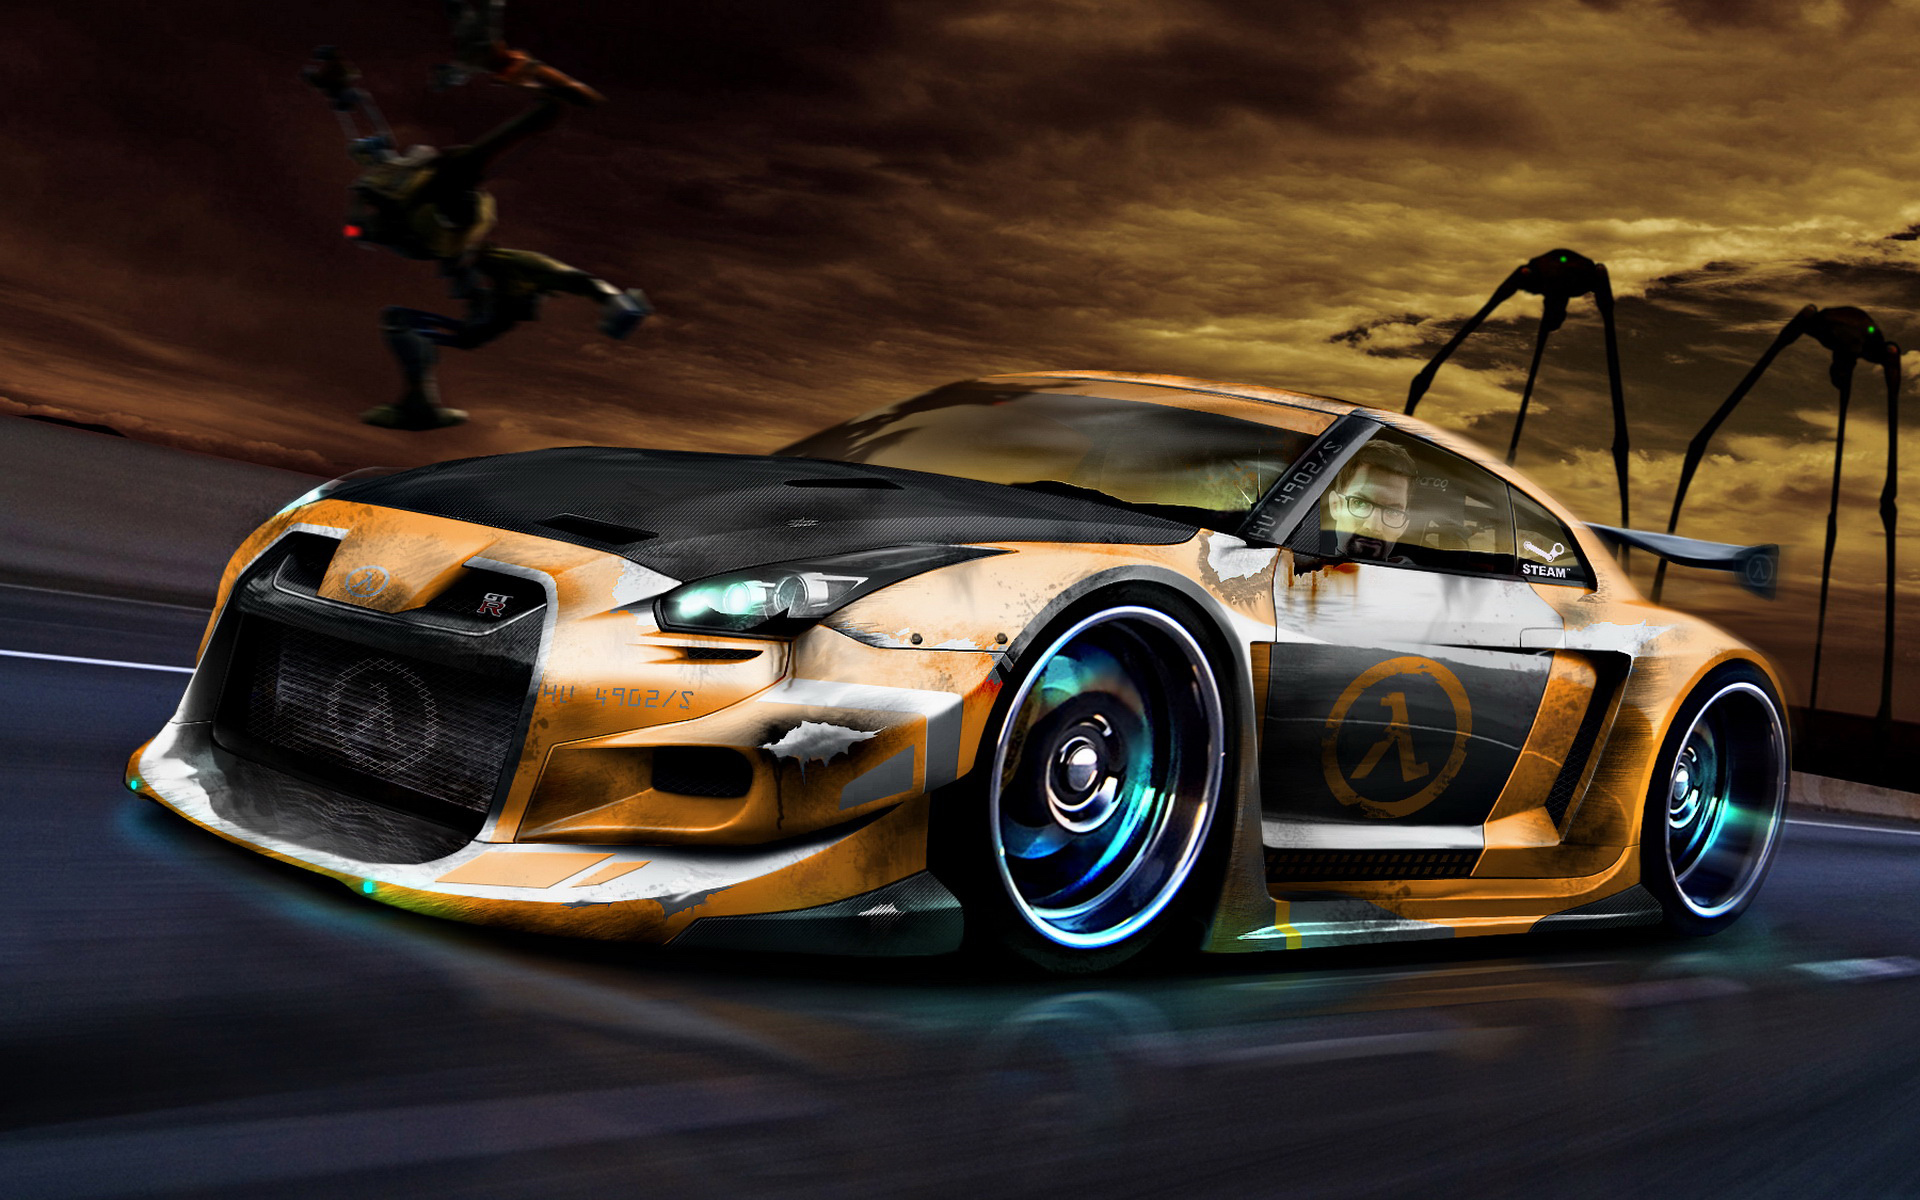 Street Racing Cars Wallpapers 14 Widescreen Wallpaper 1920x1200